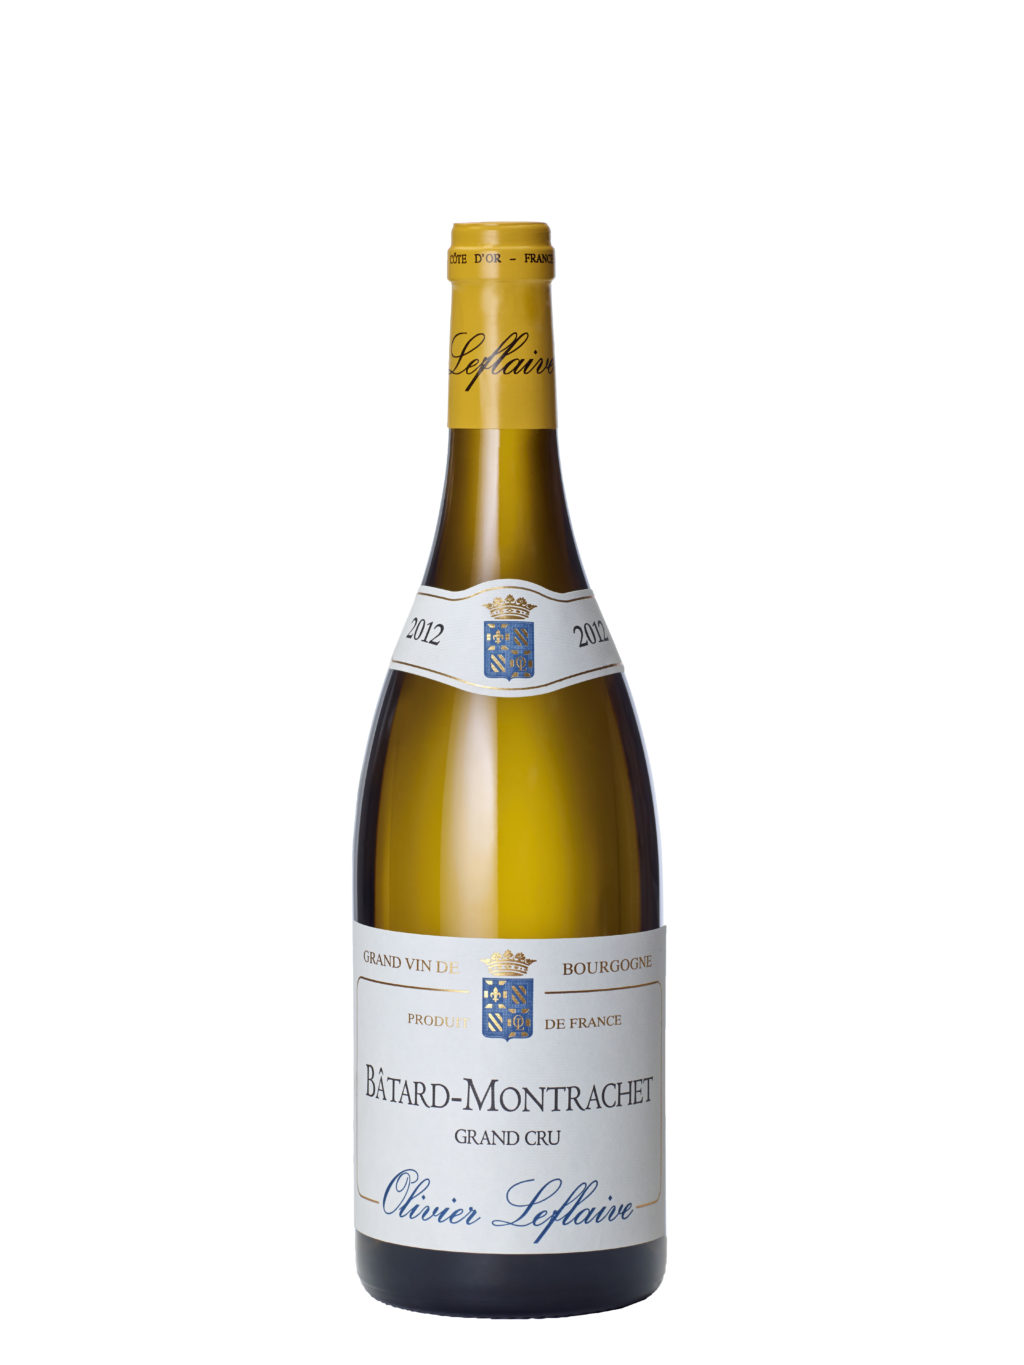 Rapport burgfest mill sime 2013 olivier leflaive - La table d olivier leflaive puligny montrachet ...